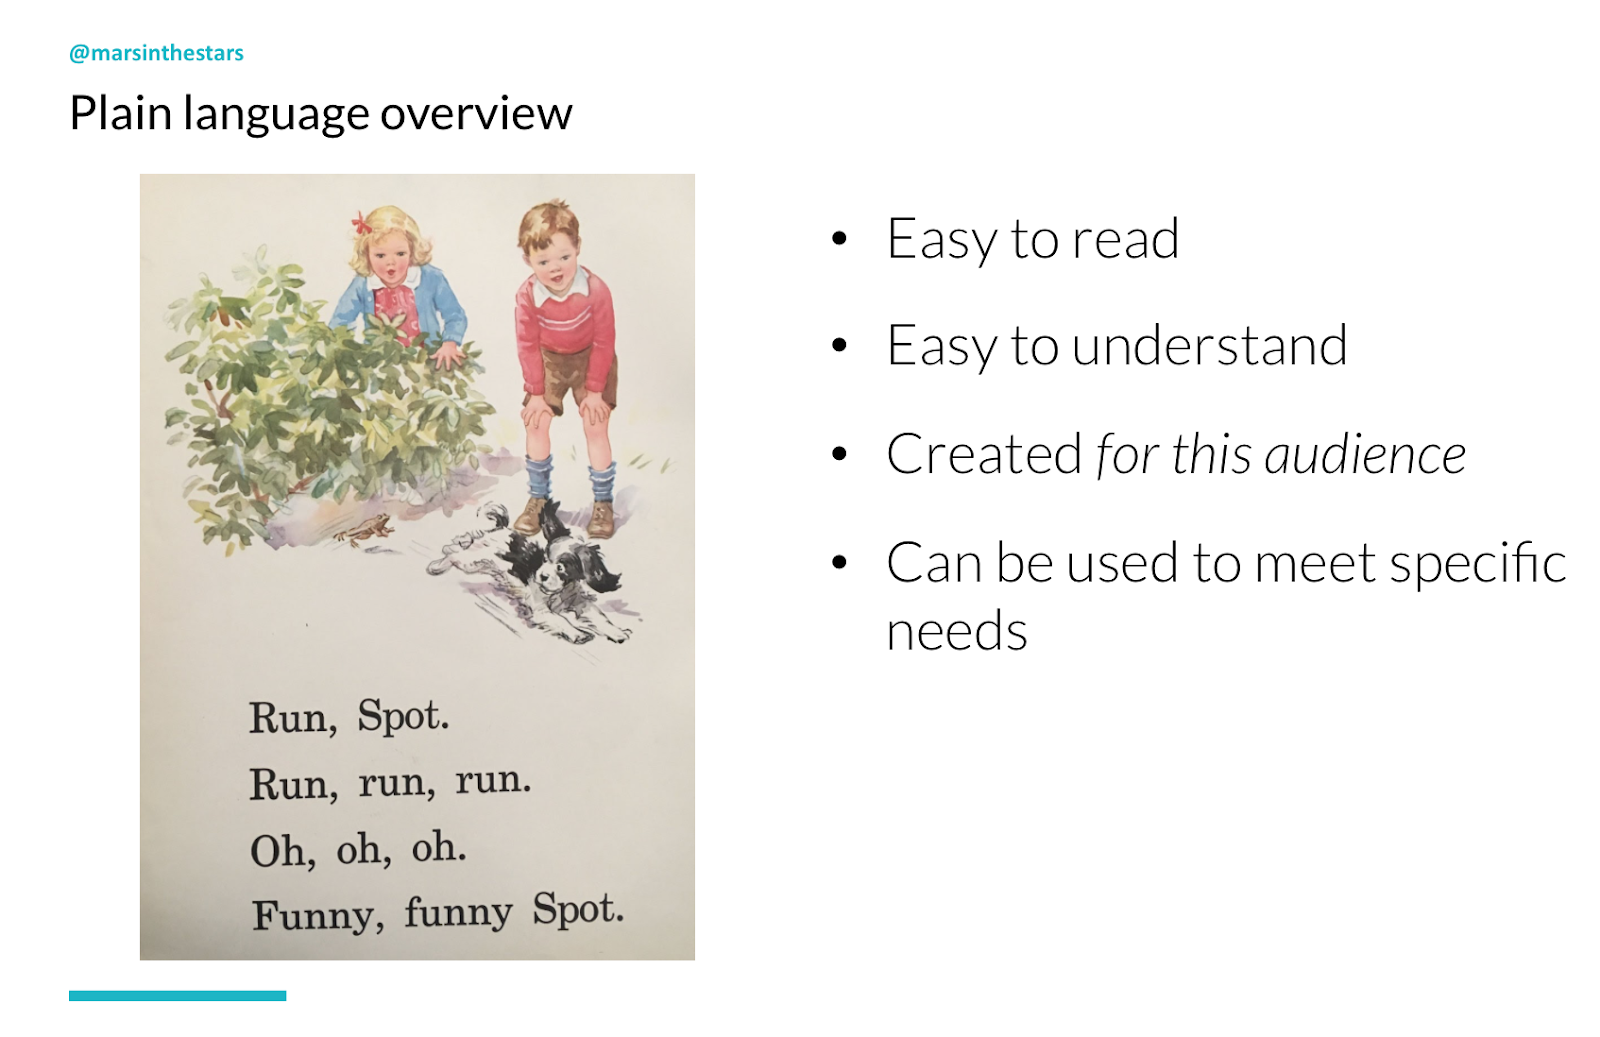 Slide shows plain language is perceived via a Dick and Jane book that says 'run, Spot. Run, run, run. Oh, oh, oh. Funny, funny spot.' Plain language is easy to read, easy to understand, created for this audience, can be used to meet specific needs.